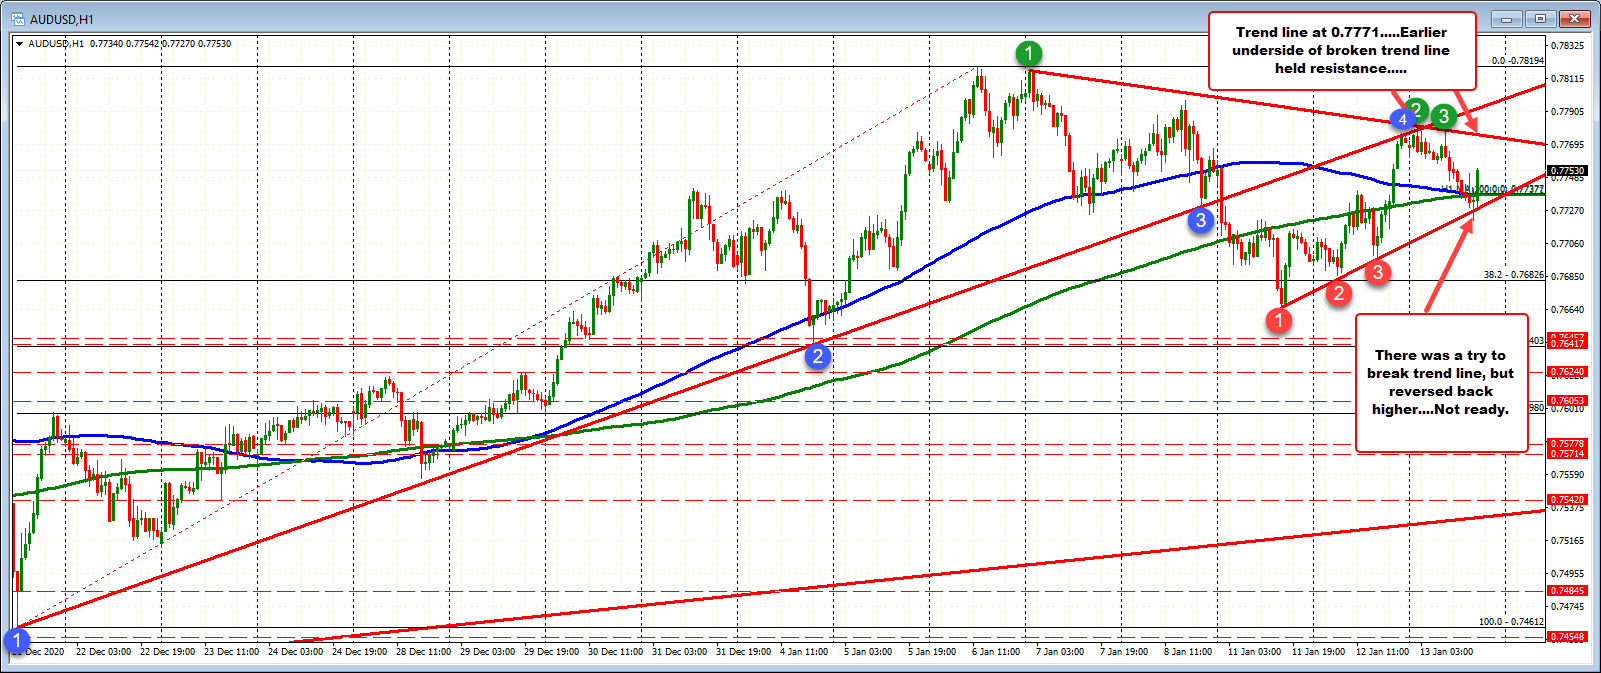 Trend line was broken but quickly rebounded